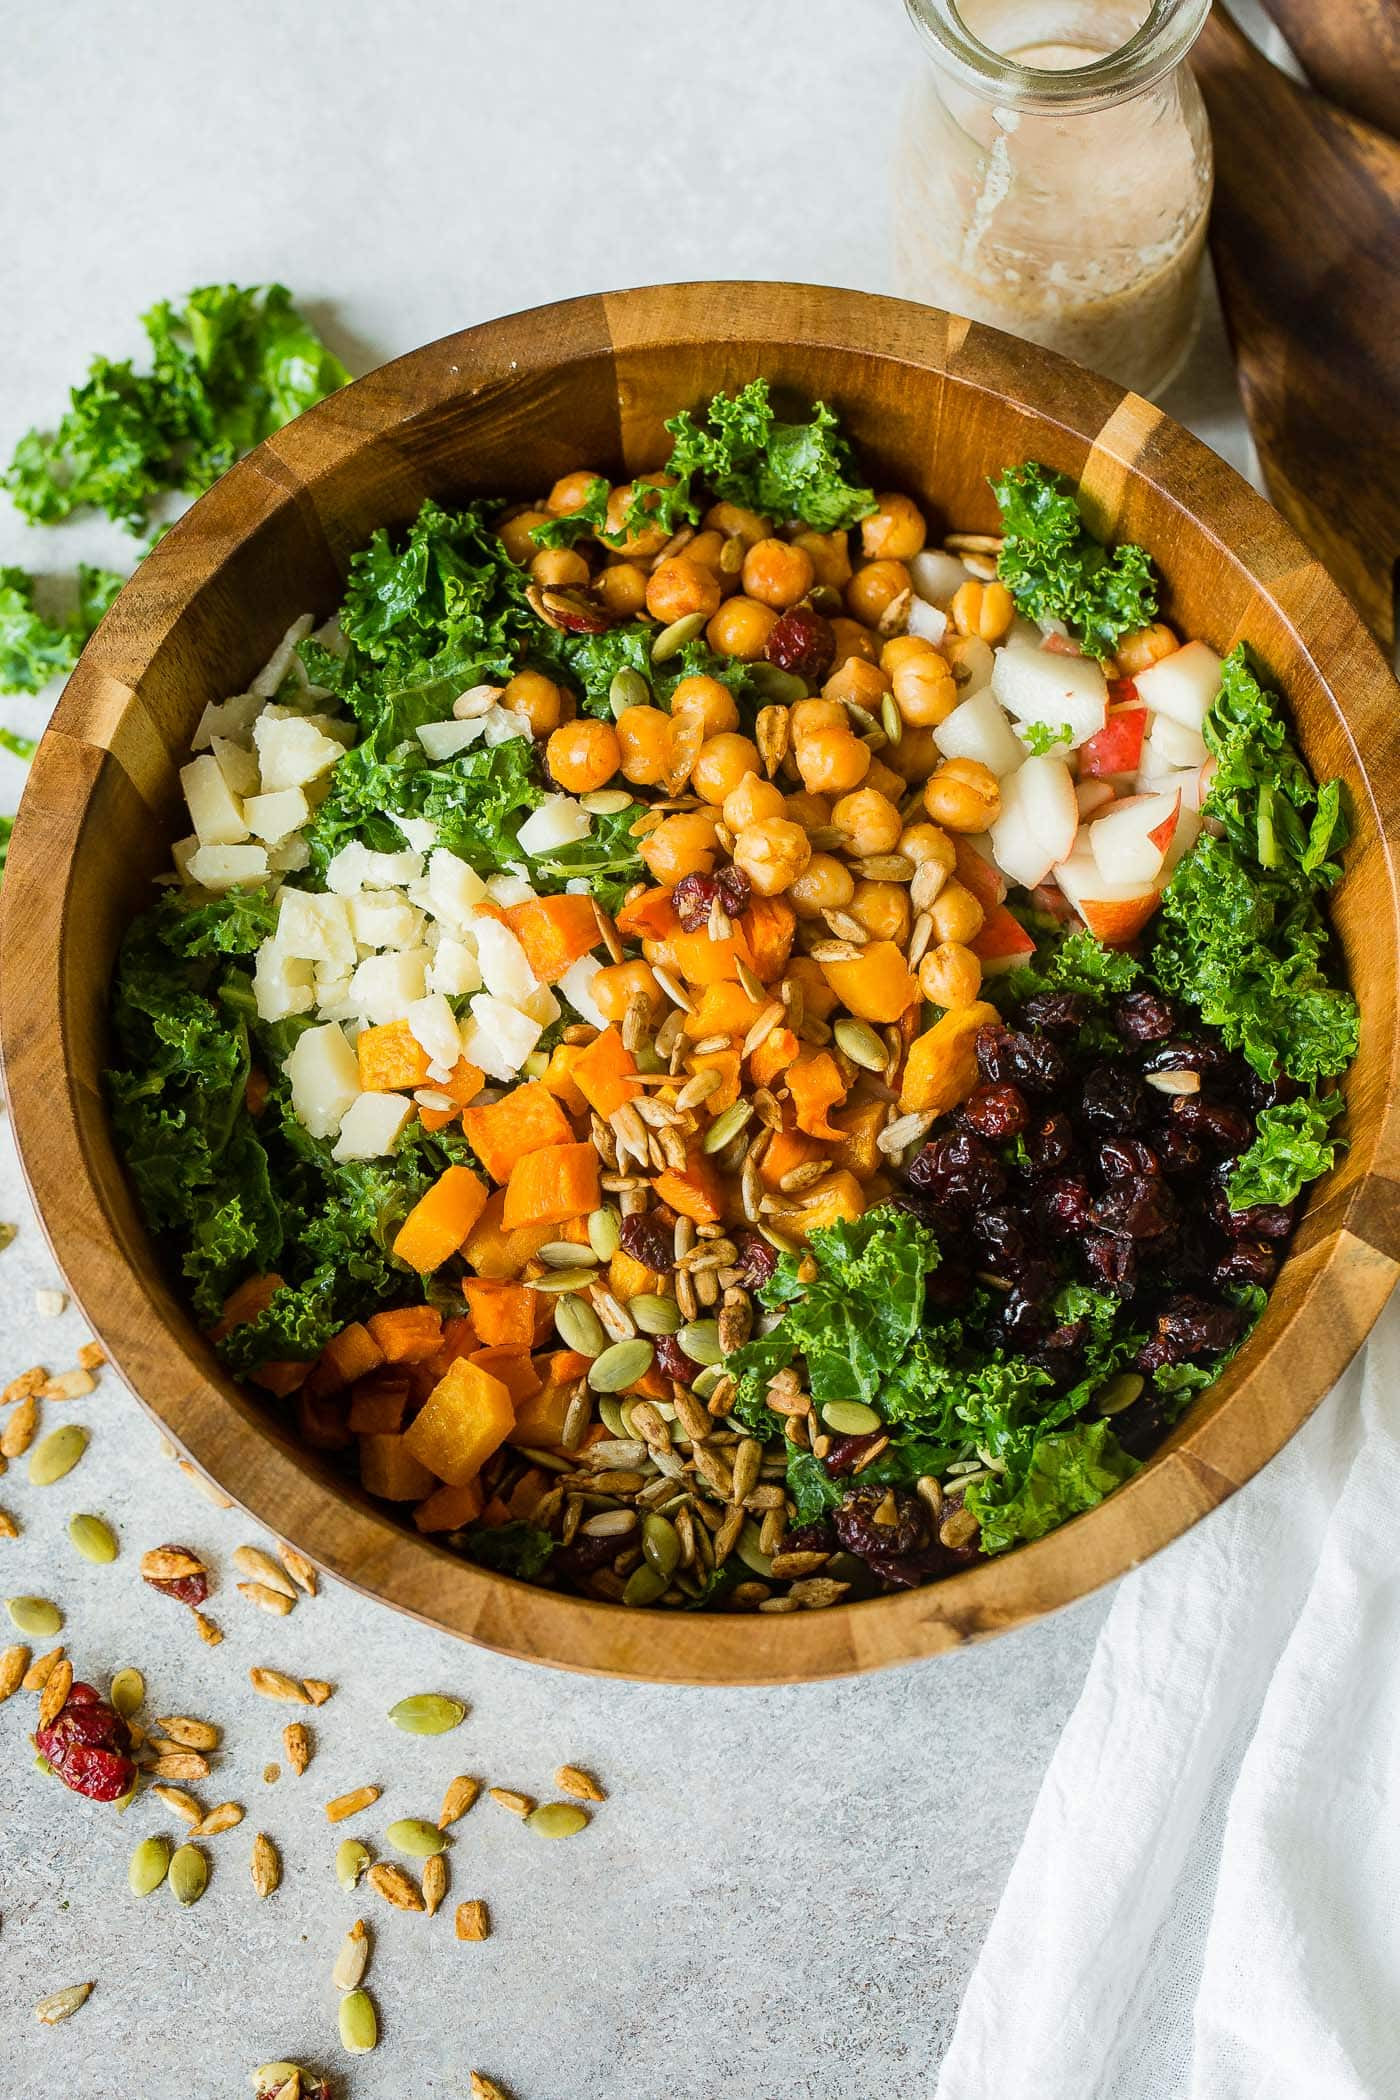 A photo of a large wooden bowl full of kale salad topped with roasted butternut squash, craisins, chickpeas, pepitas, apples and gouda cheese.